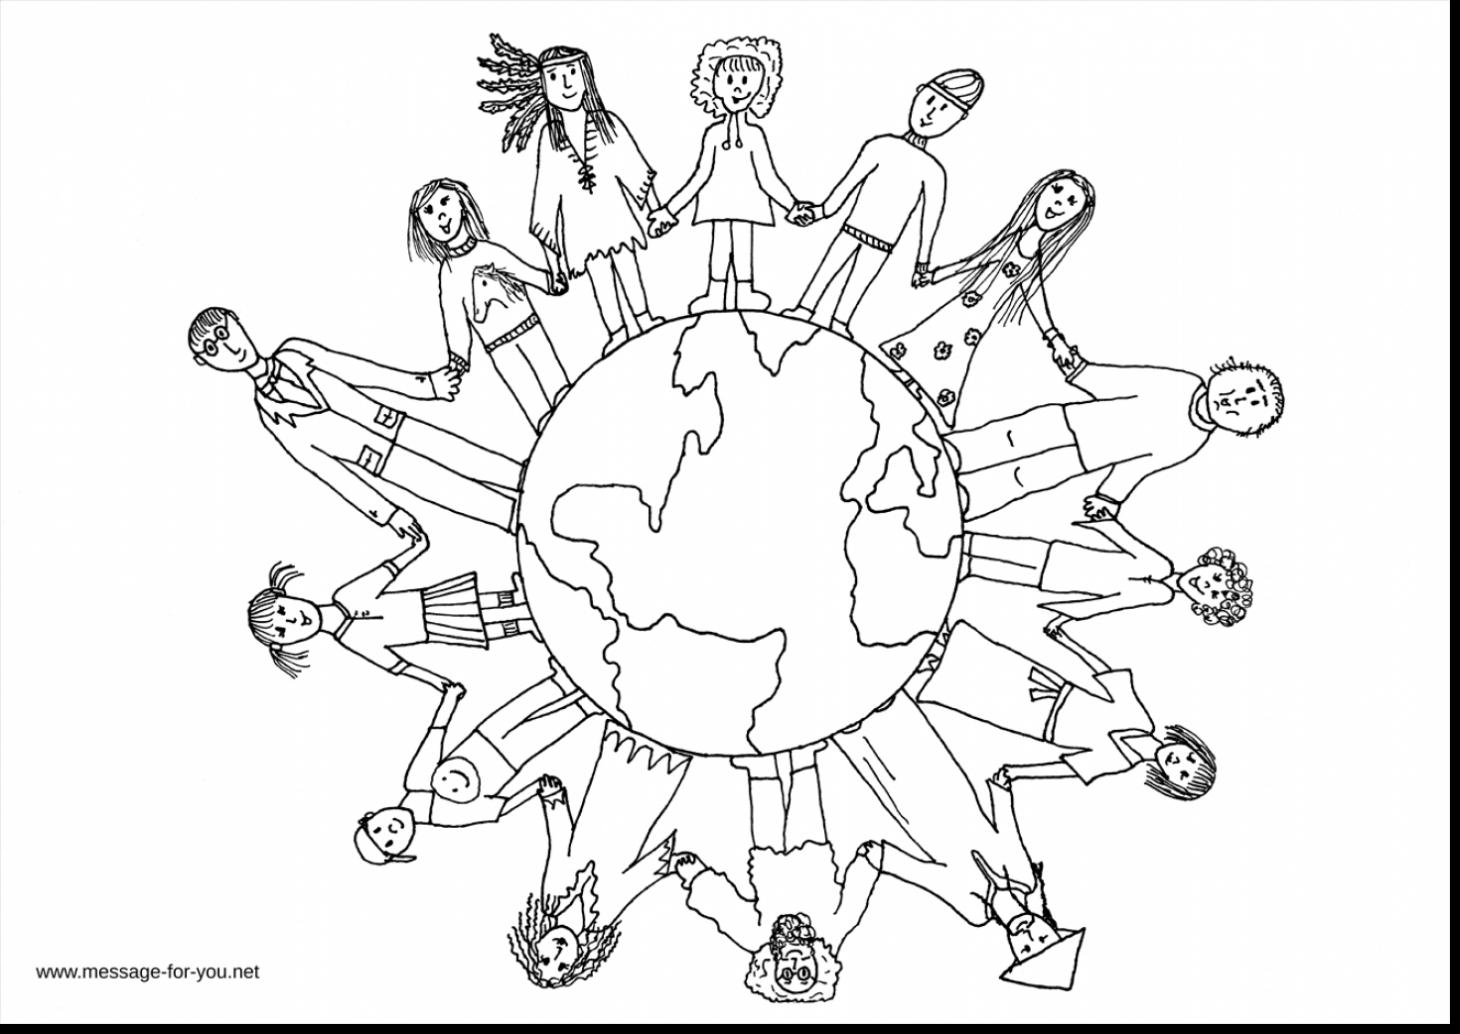 1460x1034 Children Holding Hands Coloring Page Happy Coloring Pages